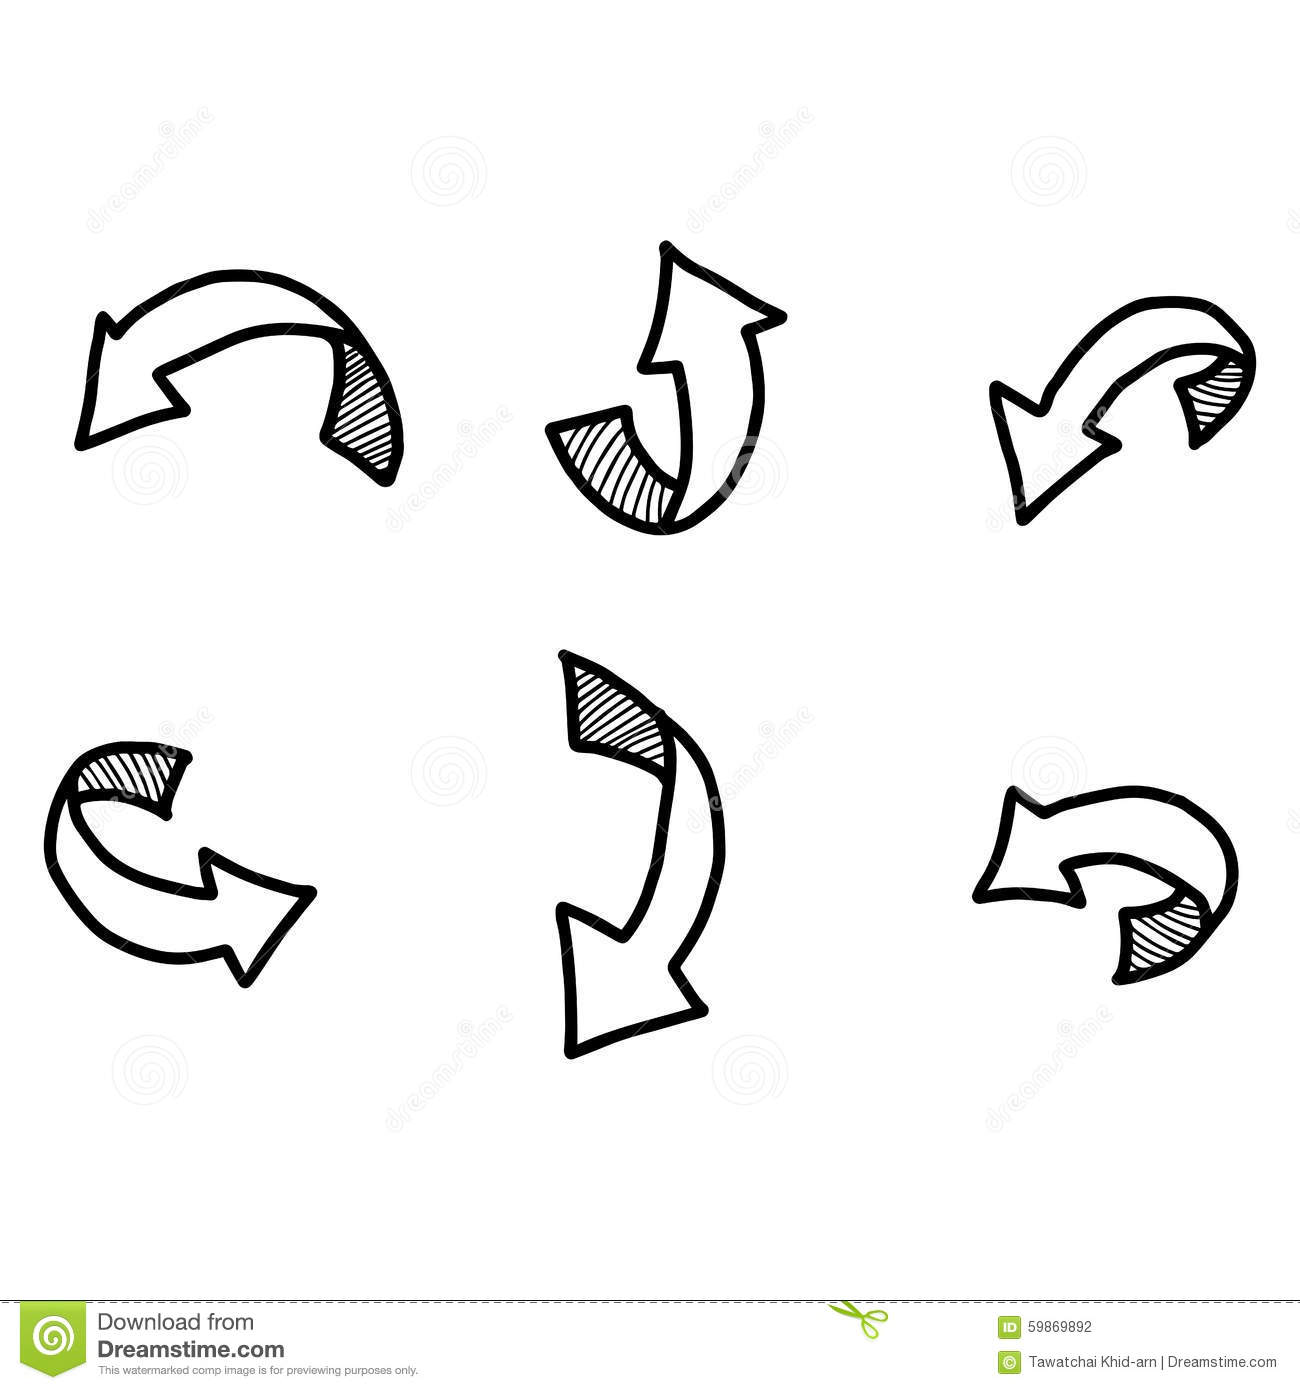 Illustration Vector Doodles Hand Drawn Curved Arrow With